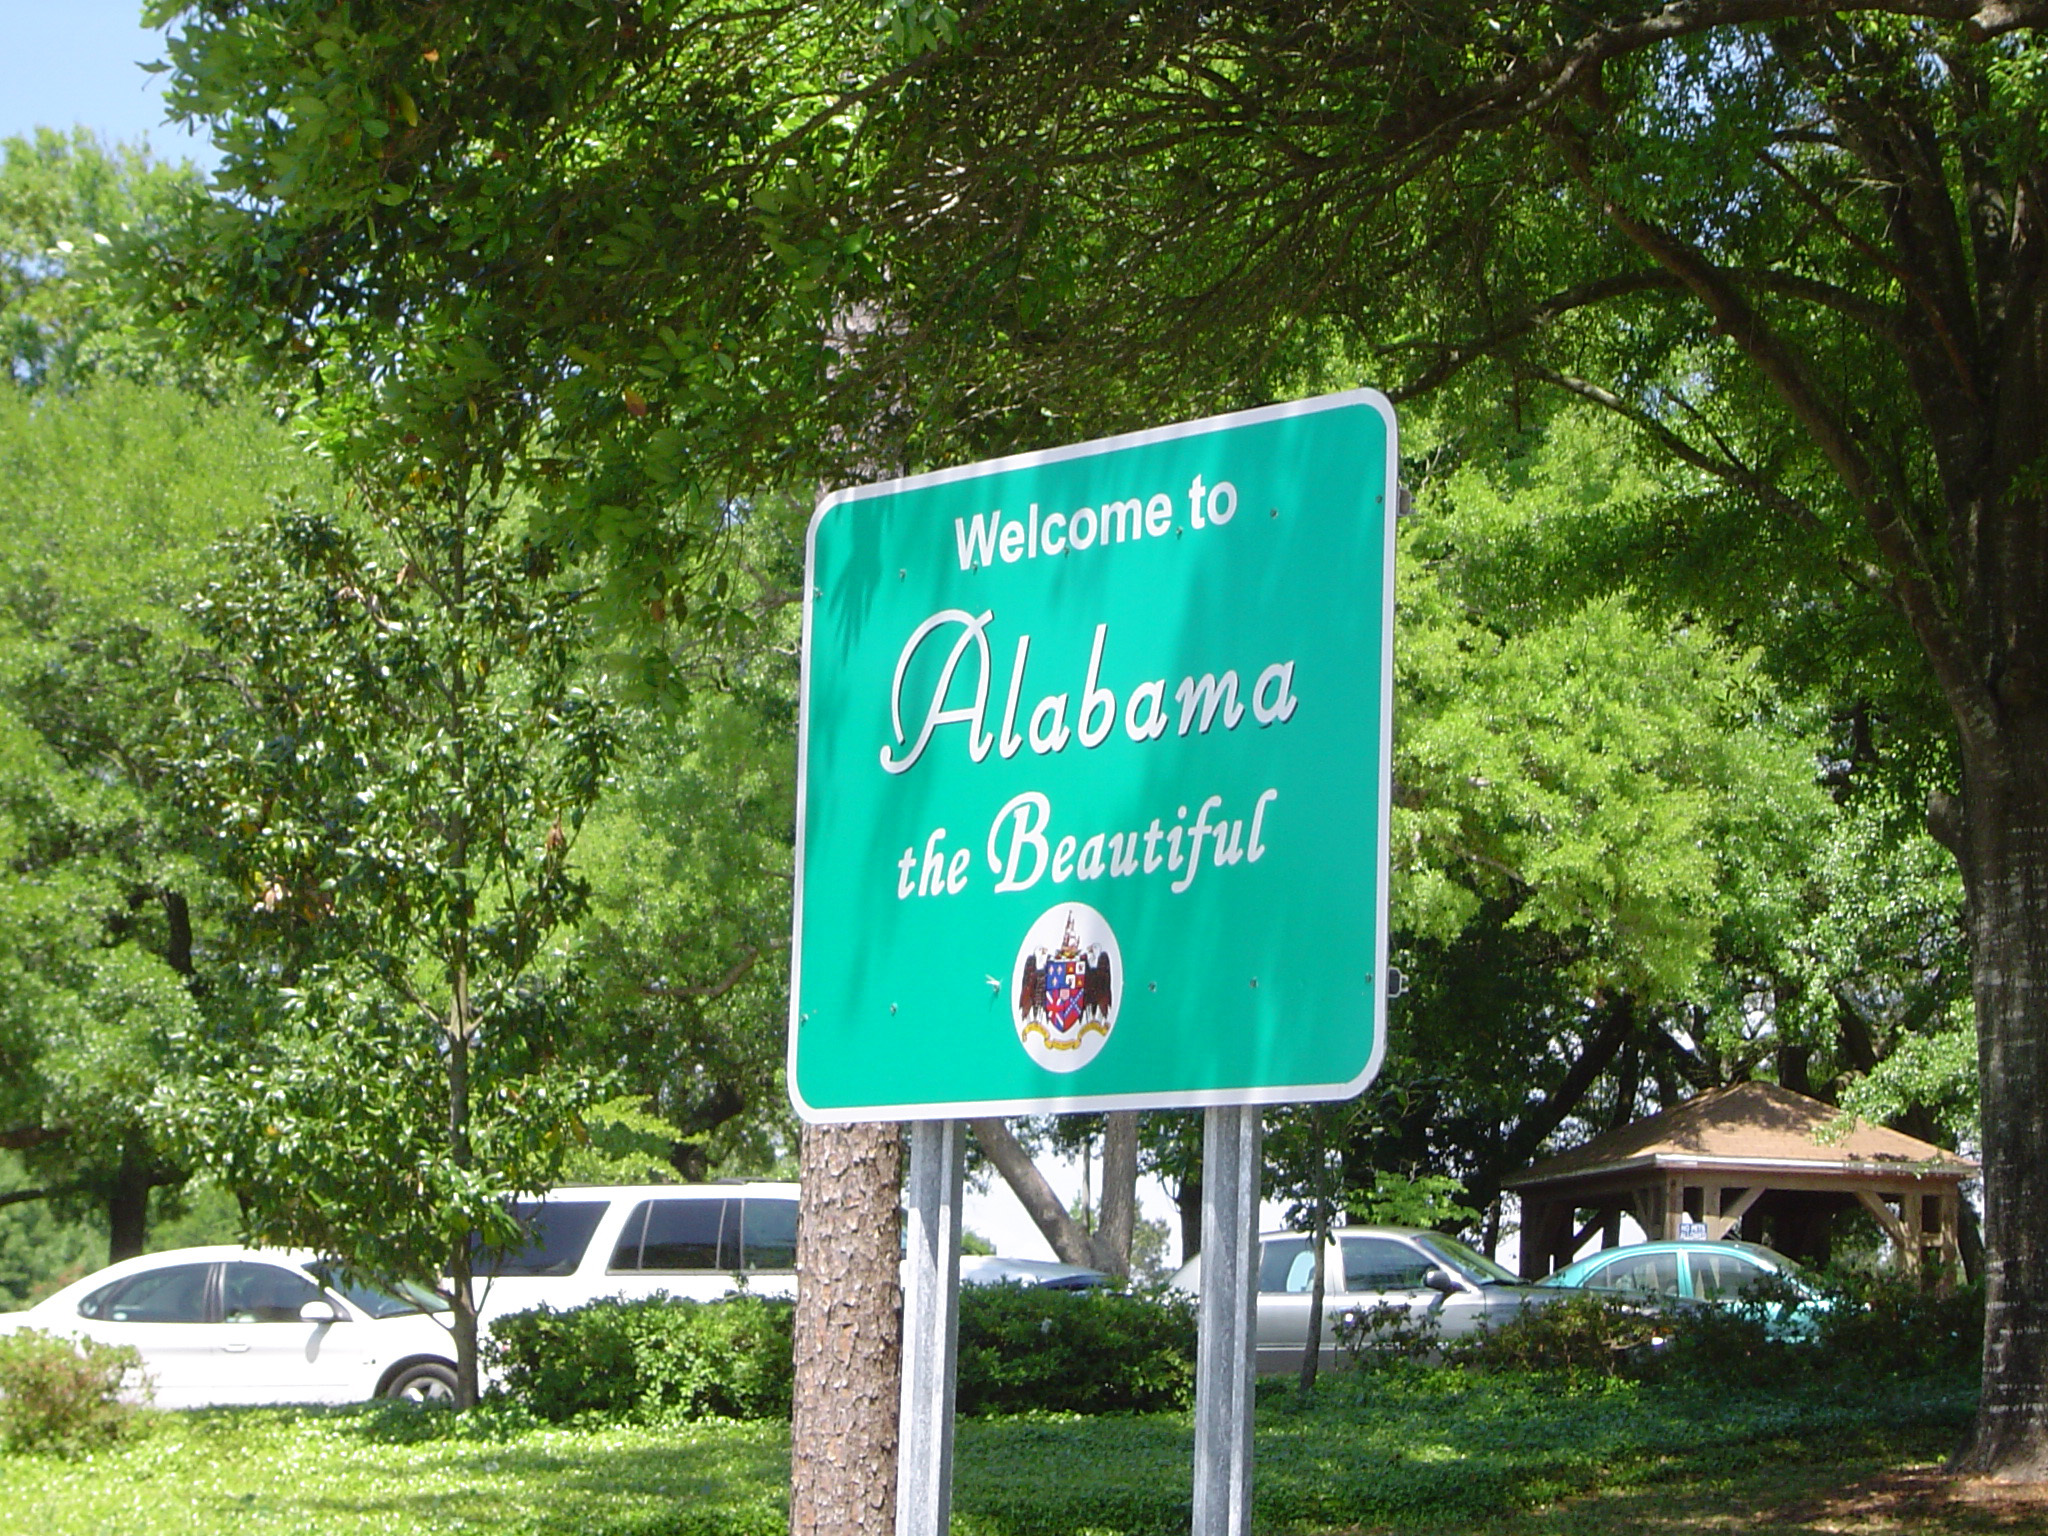 Alabama welcome road sign at the side of a leafy green street conceptual of a road trip vacation driving around the USA